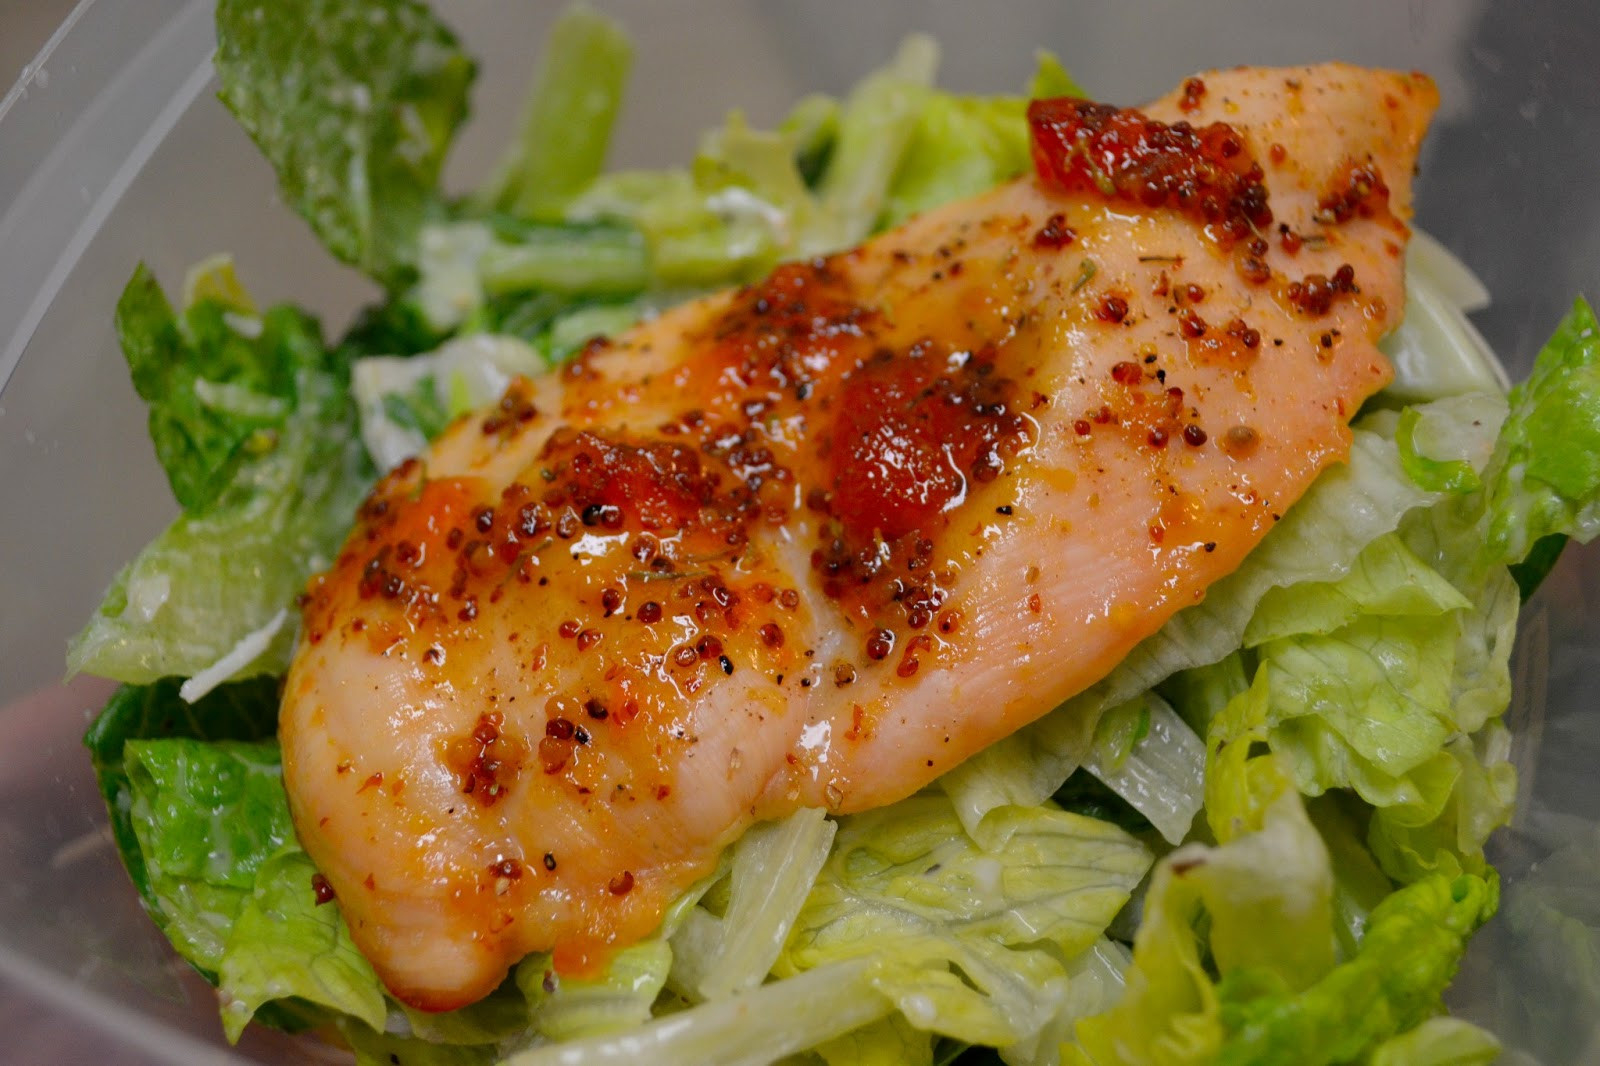 Healthy Baked Chicken Breast  Baked Chicken Breast Recipes Easy Calories Bone in And